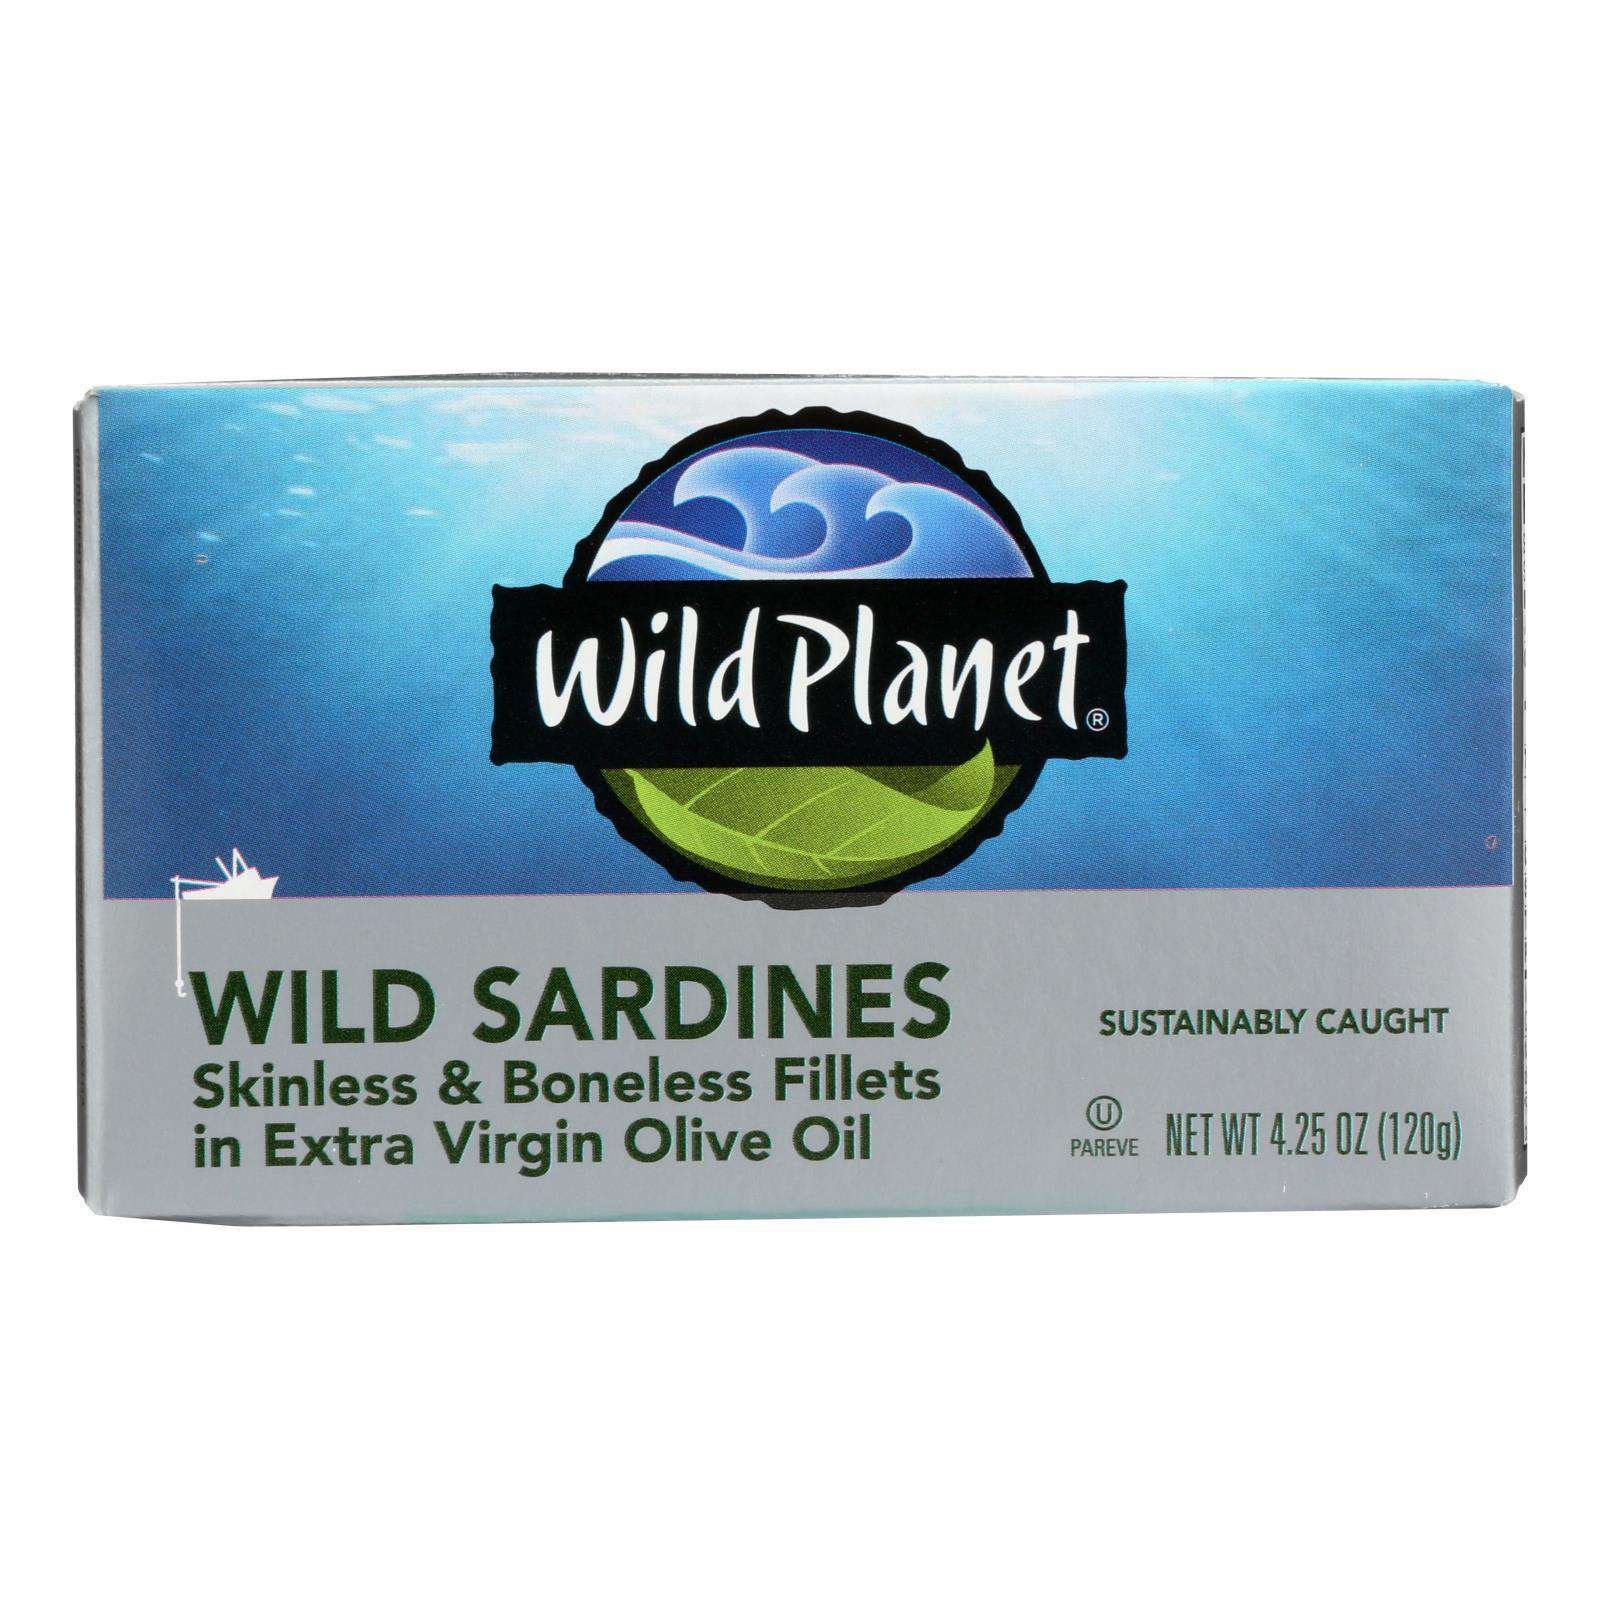 Wild Planet Wild Sardines - Skinless Boneless Fillets In Olive Oil - Case Of 12 - 4.25 Oz - BeeGreen